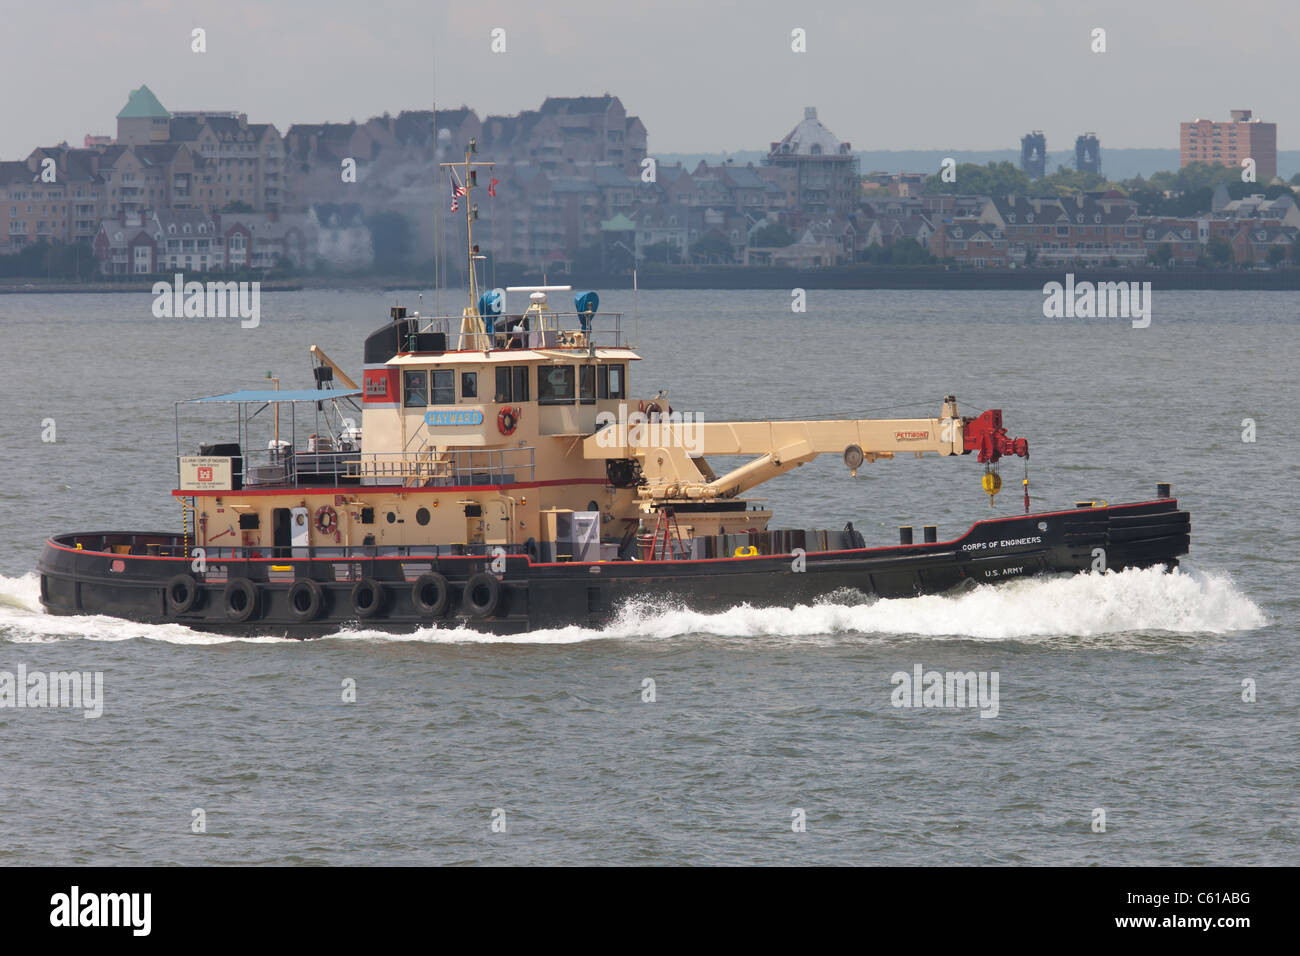 US Army Corps of Engineers drift collection vessel Hayward in New York Harbor. - Stock Image